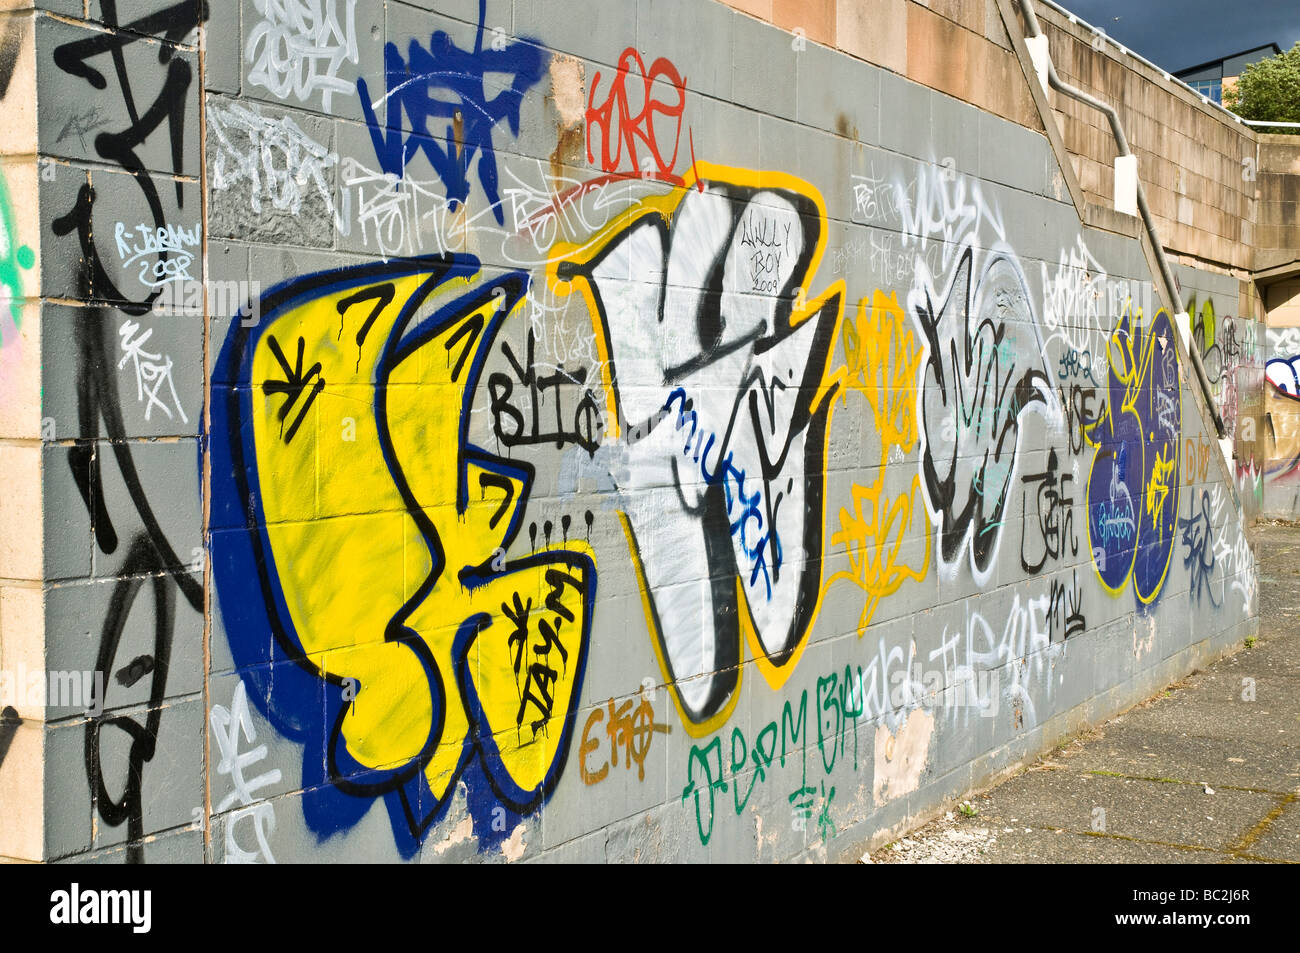 Dorable Pictures Of Graffiti Art On Walls Frieze - Wall Art ...